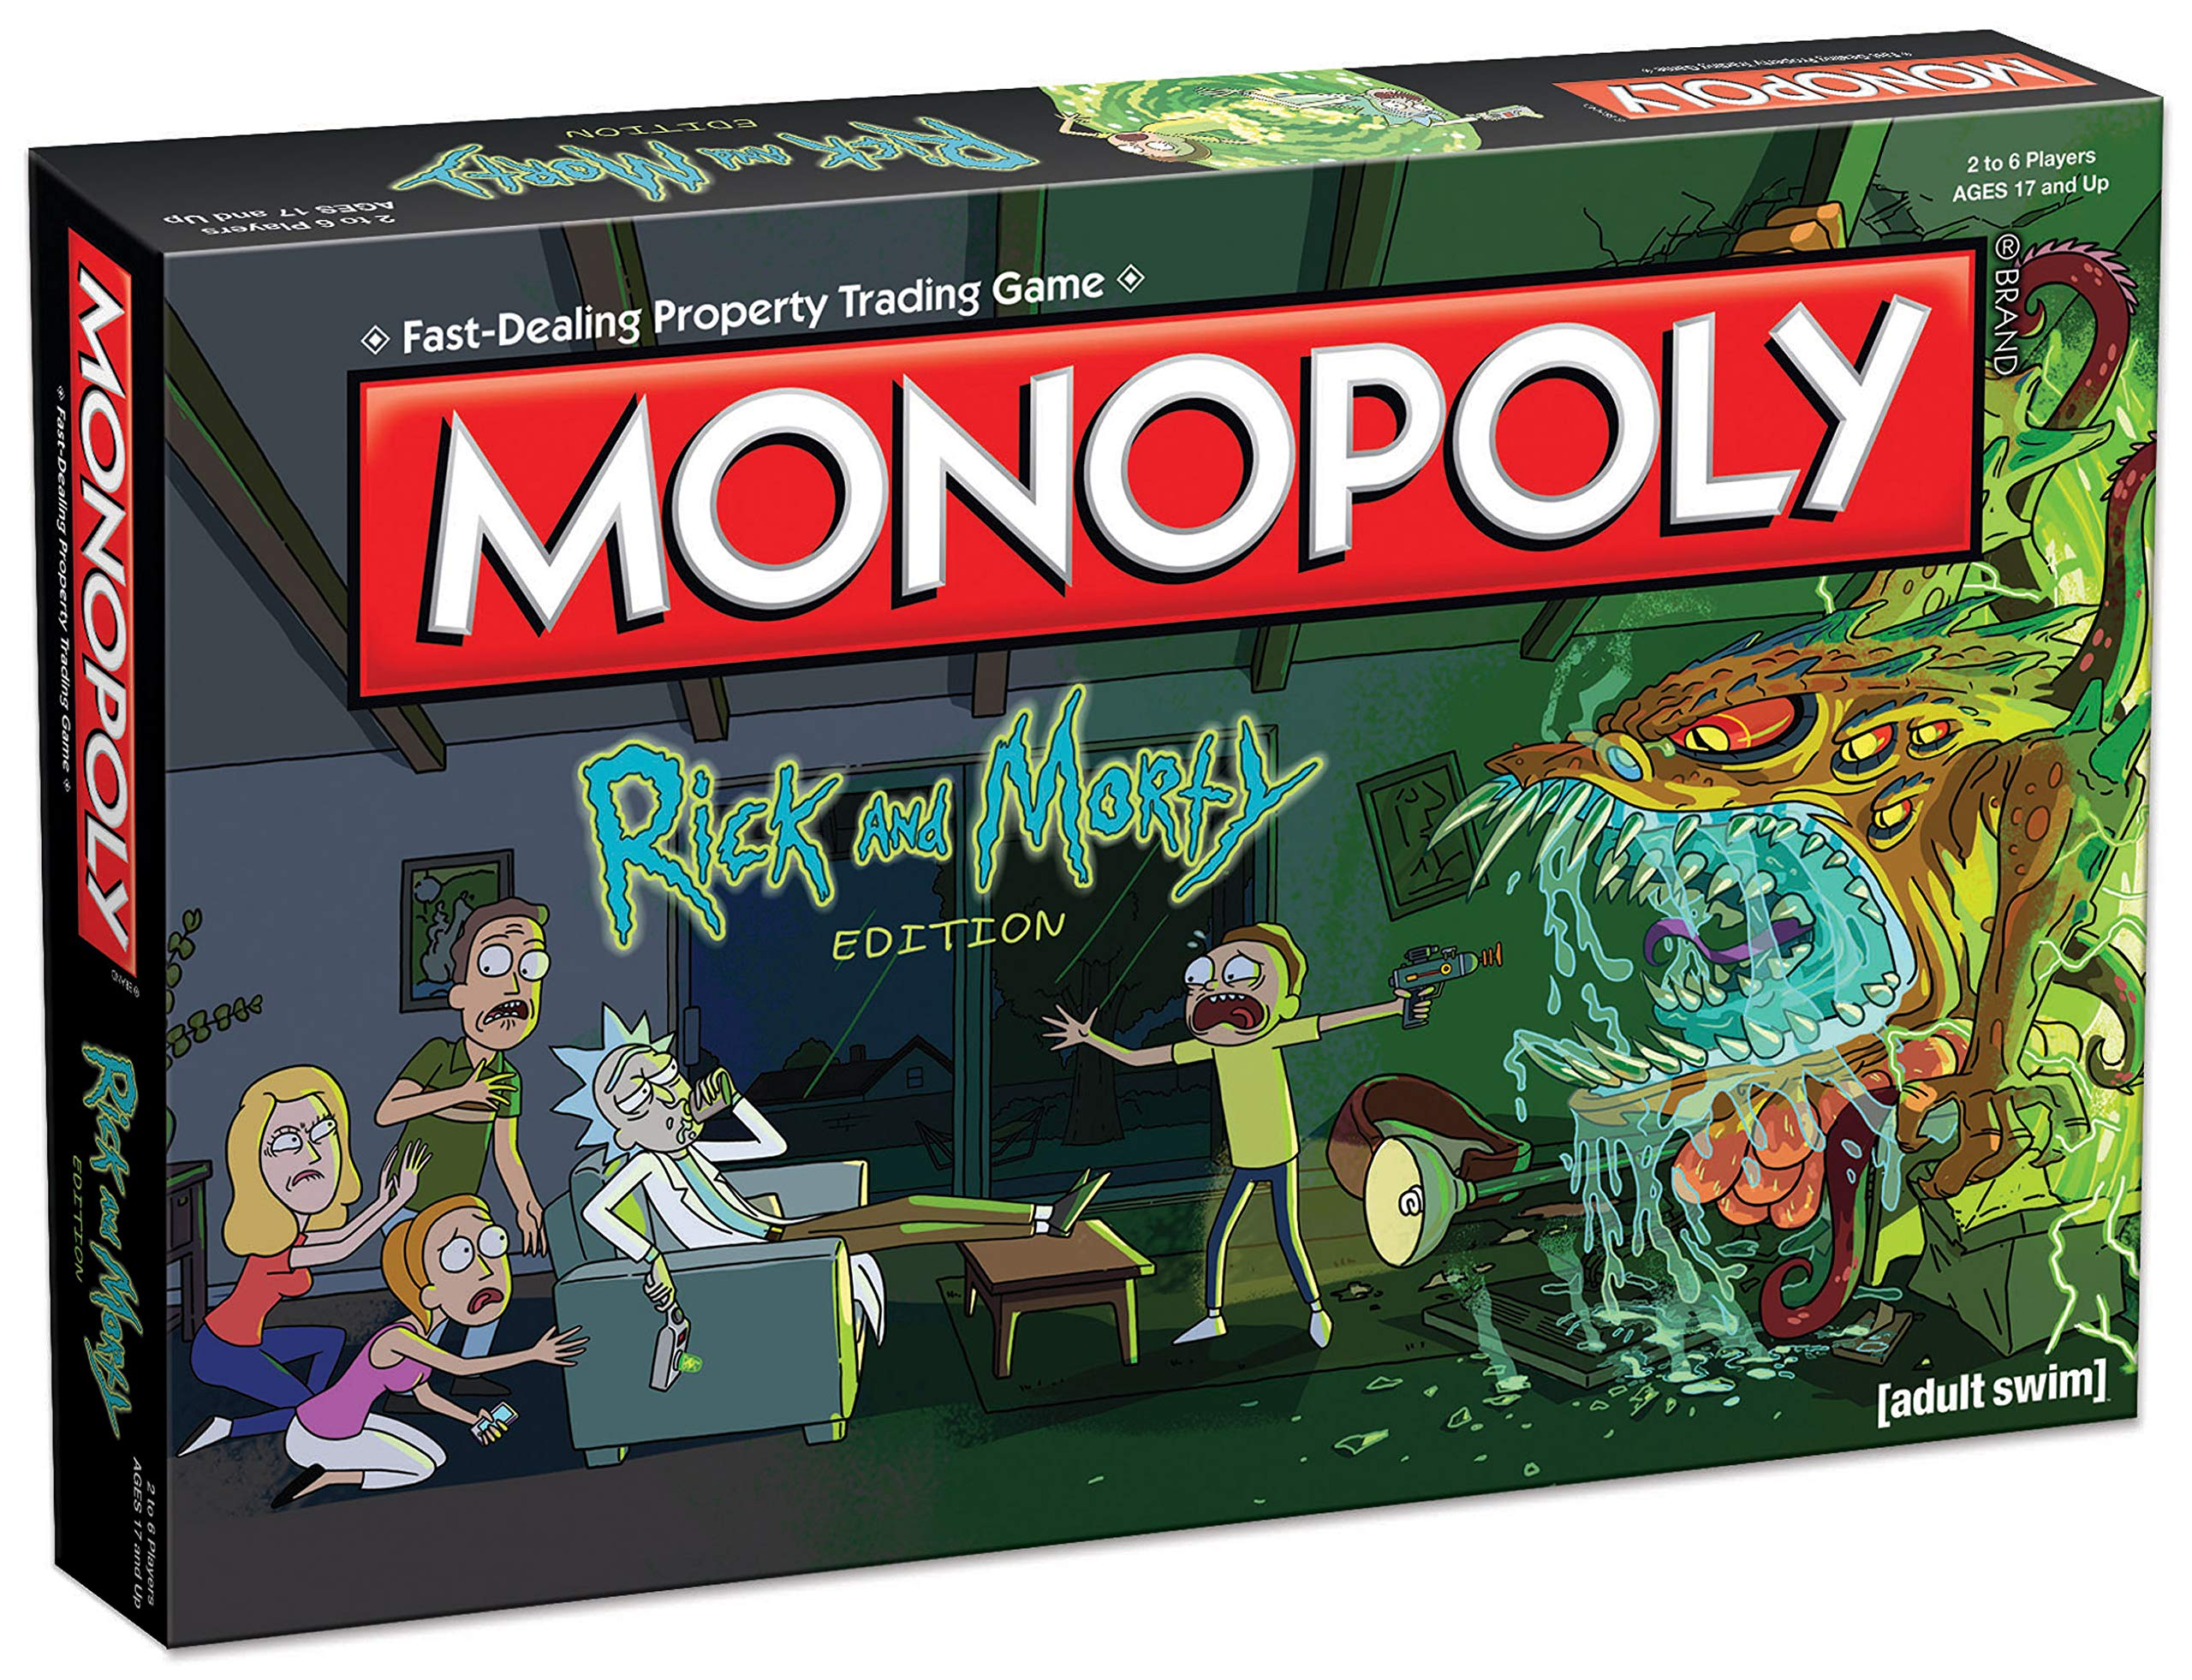 Monopoly: Rick and Morty: Amazon.es: USAopoly: Libros en idiomas extranjeros